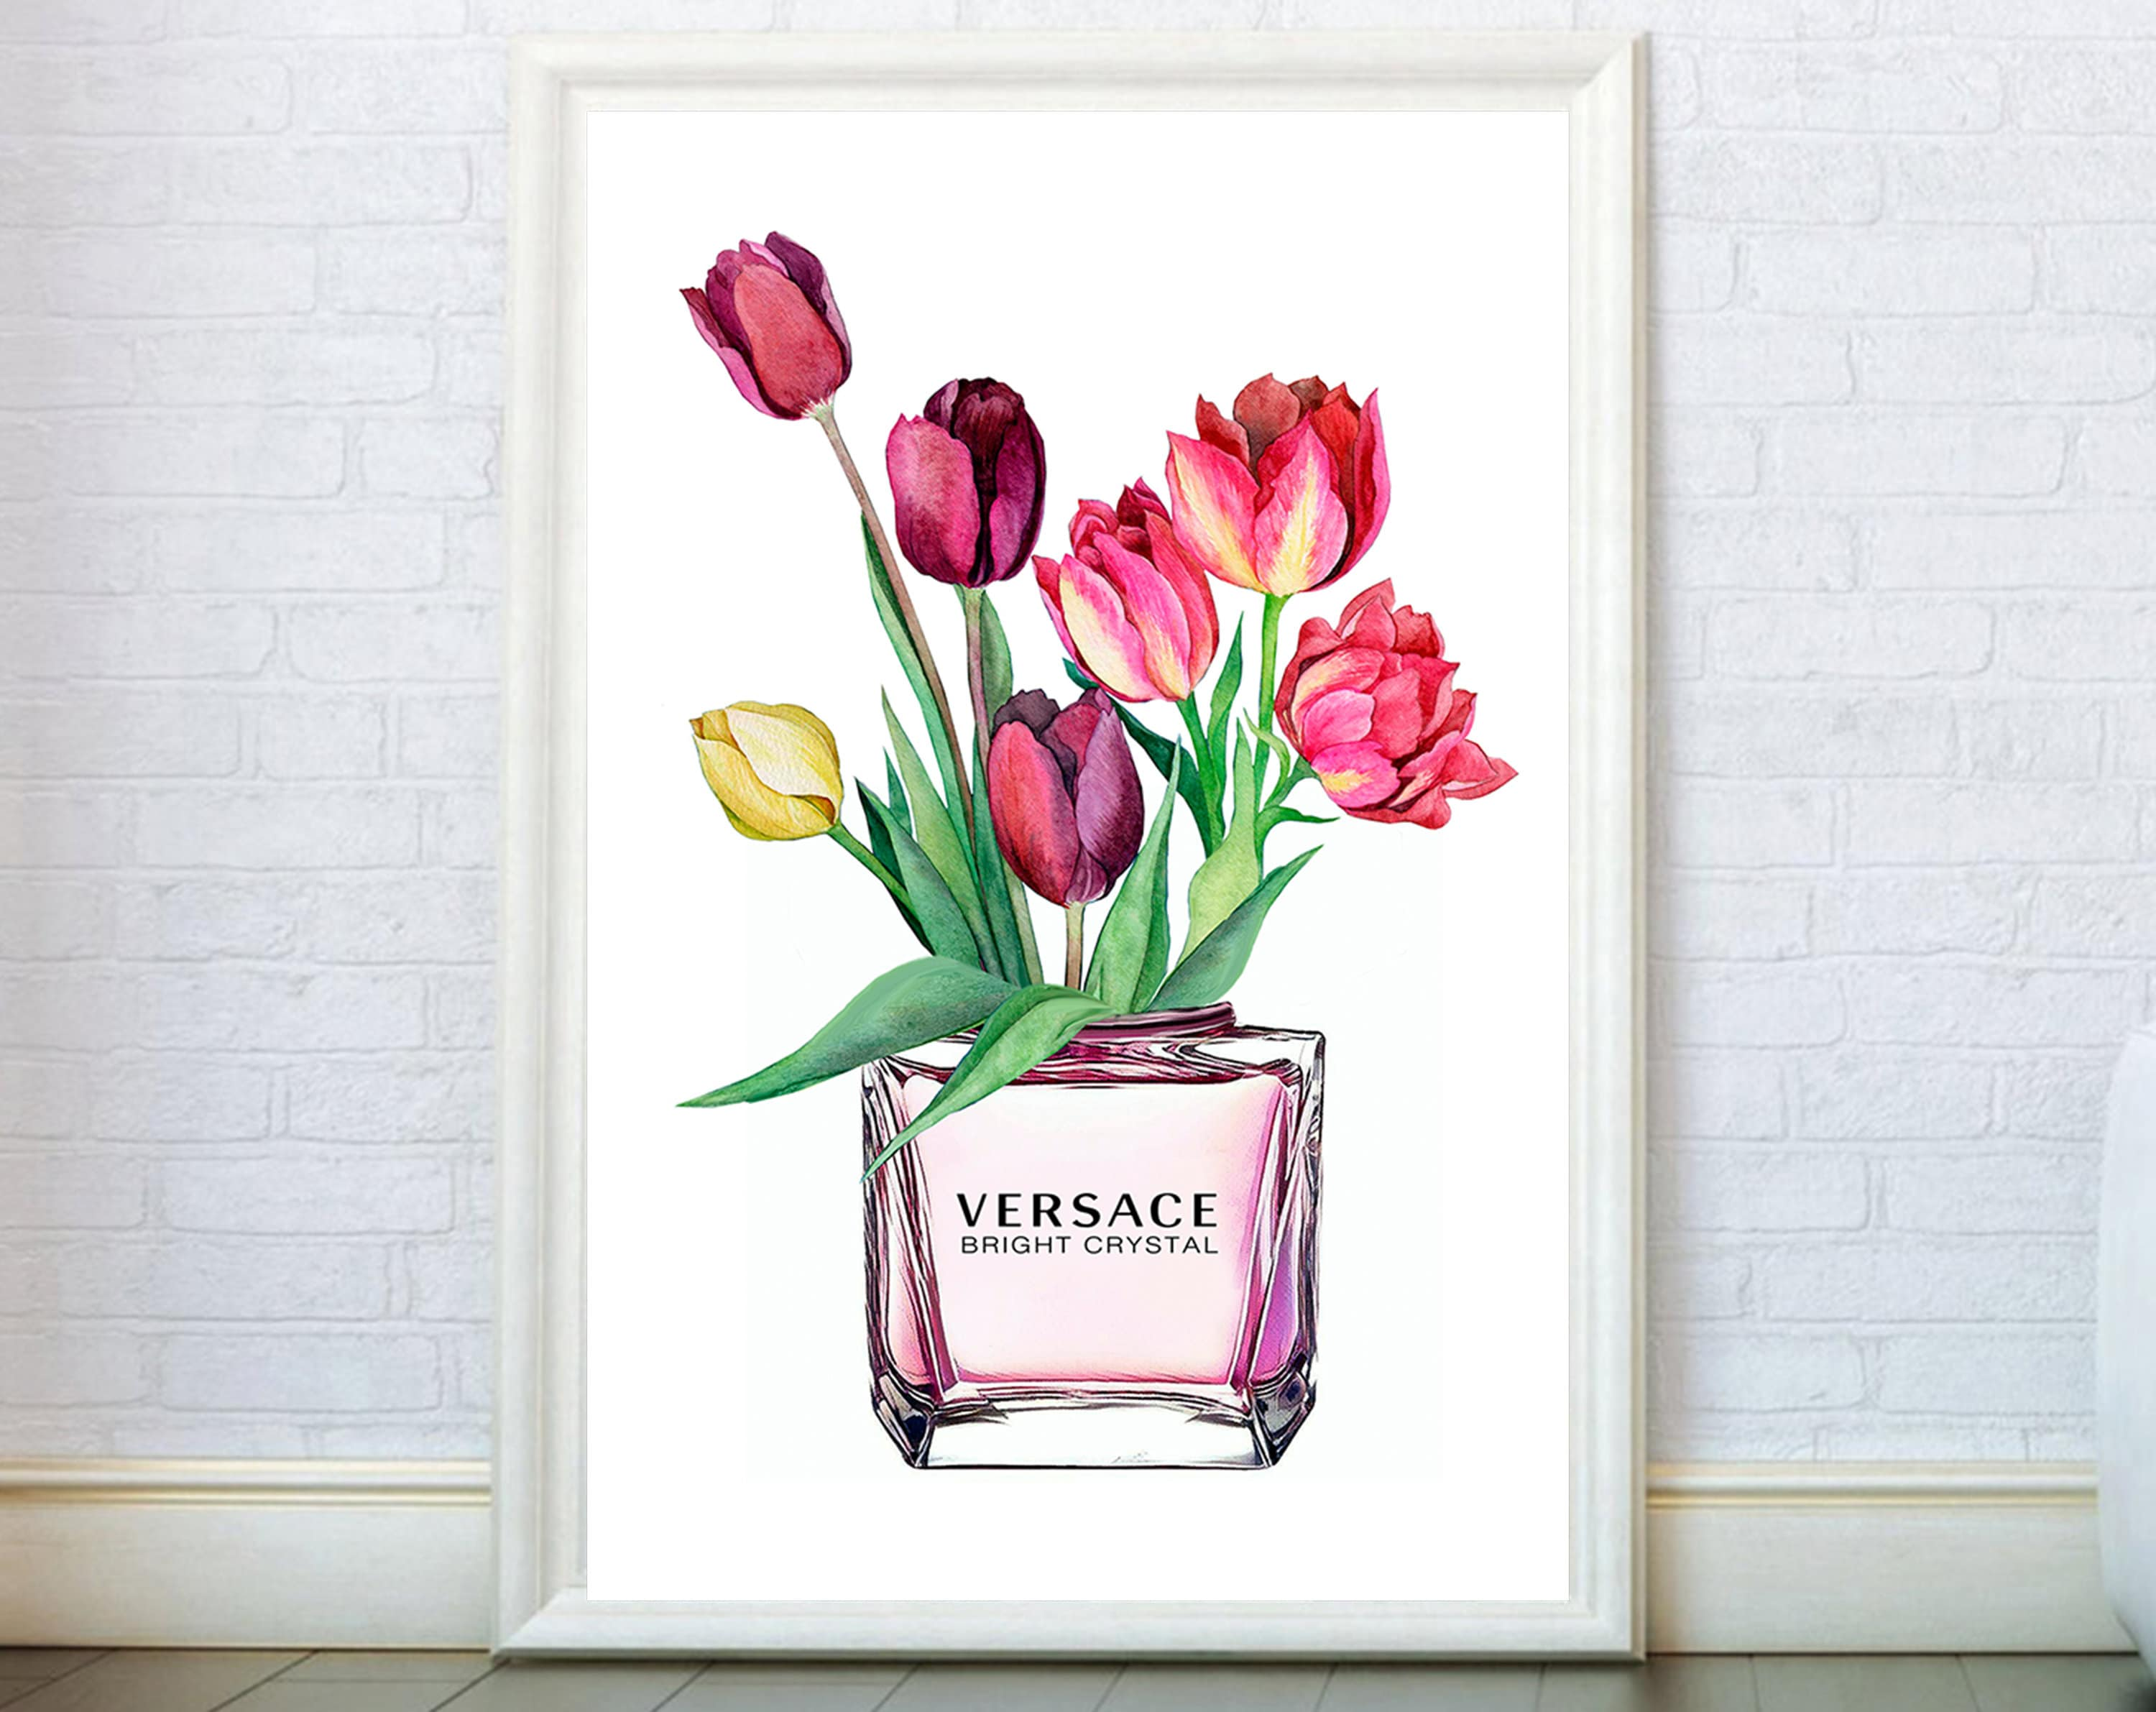 ba3fa25886f35 Perfume Bottle Print inspired by Gianni Versace Poster. Flowers  Illustration Fashion Wall Art Home Decor Modern Prints Girly Gifts.